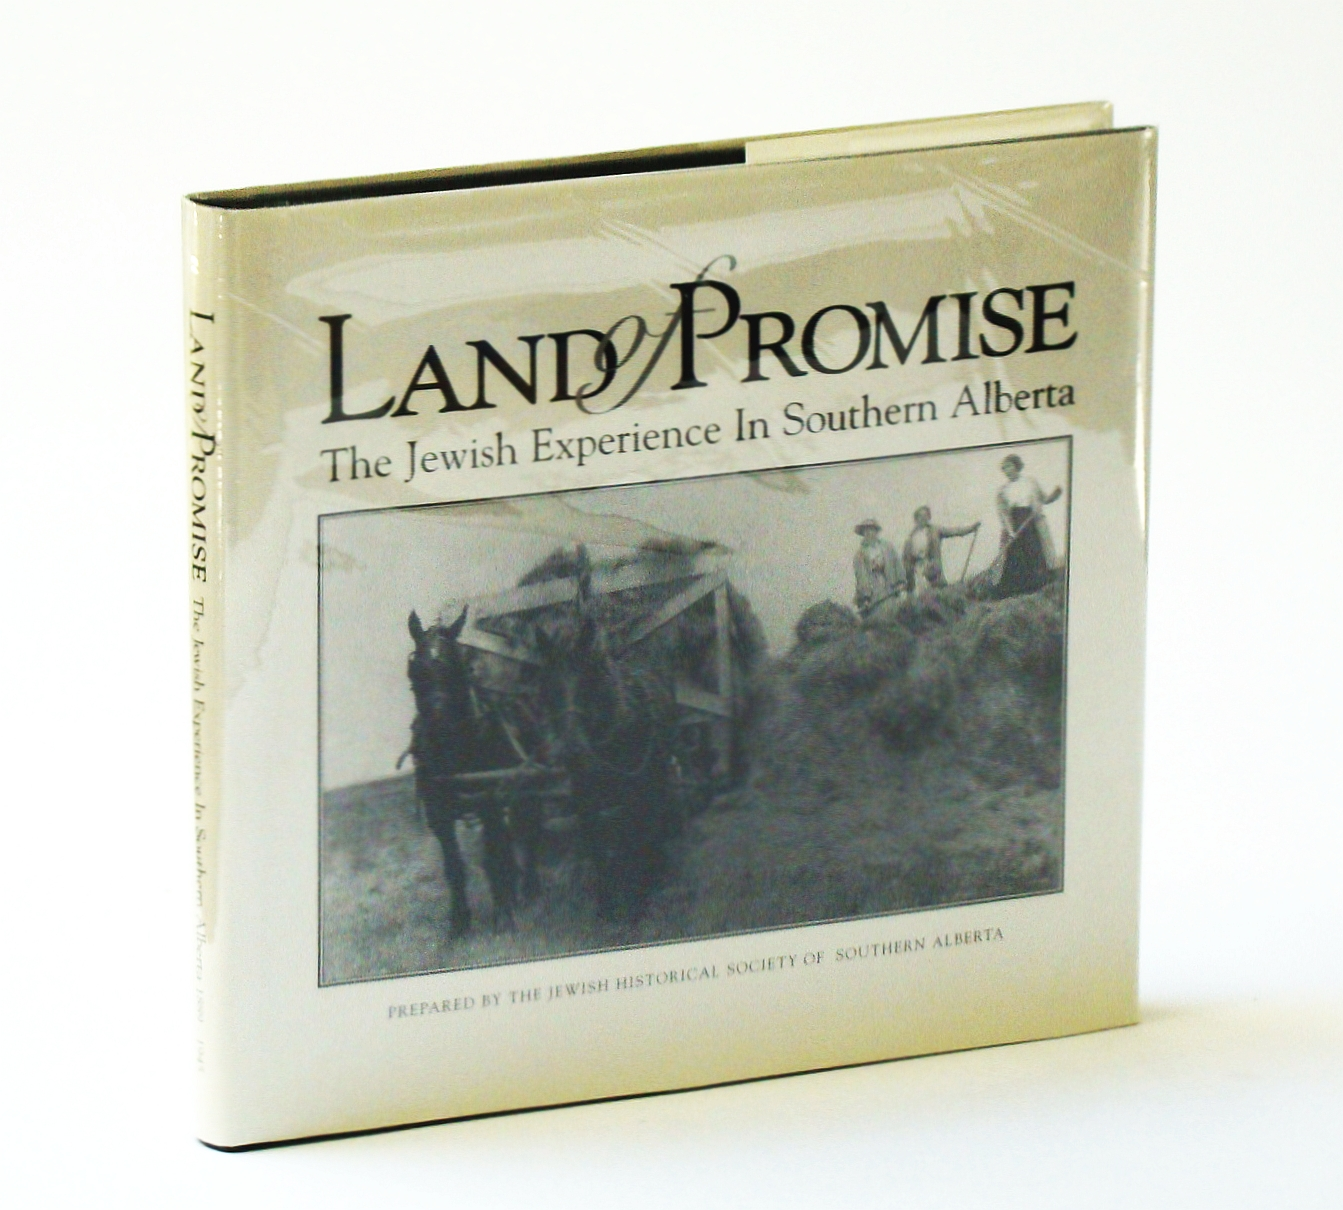 Image for Land of promise: The Jewish experience in Southern Alberta